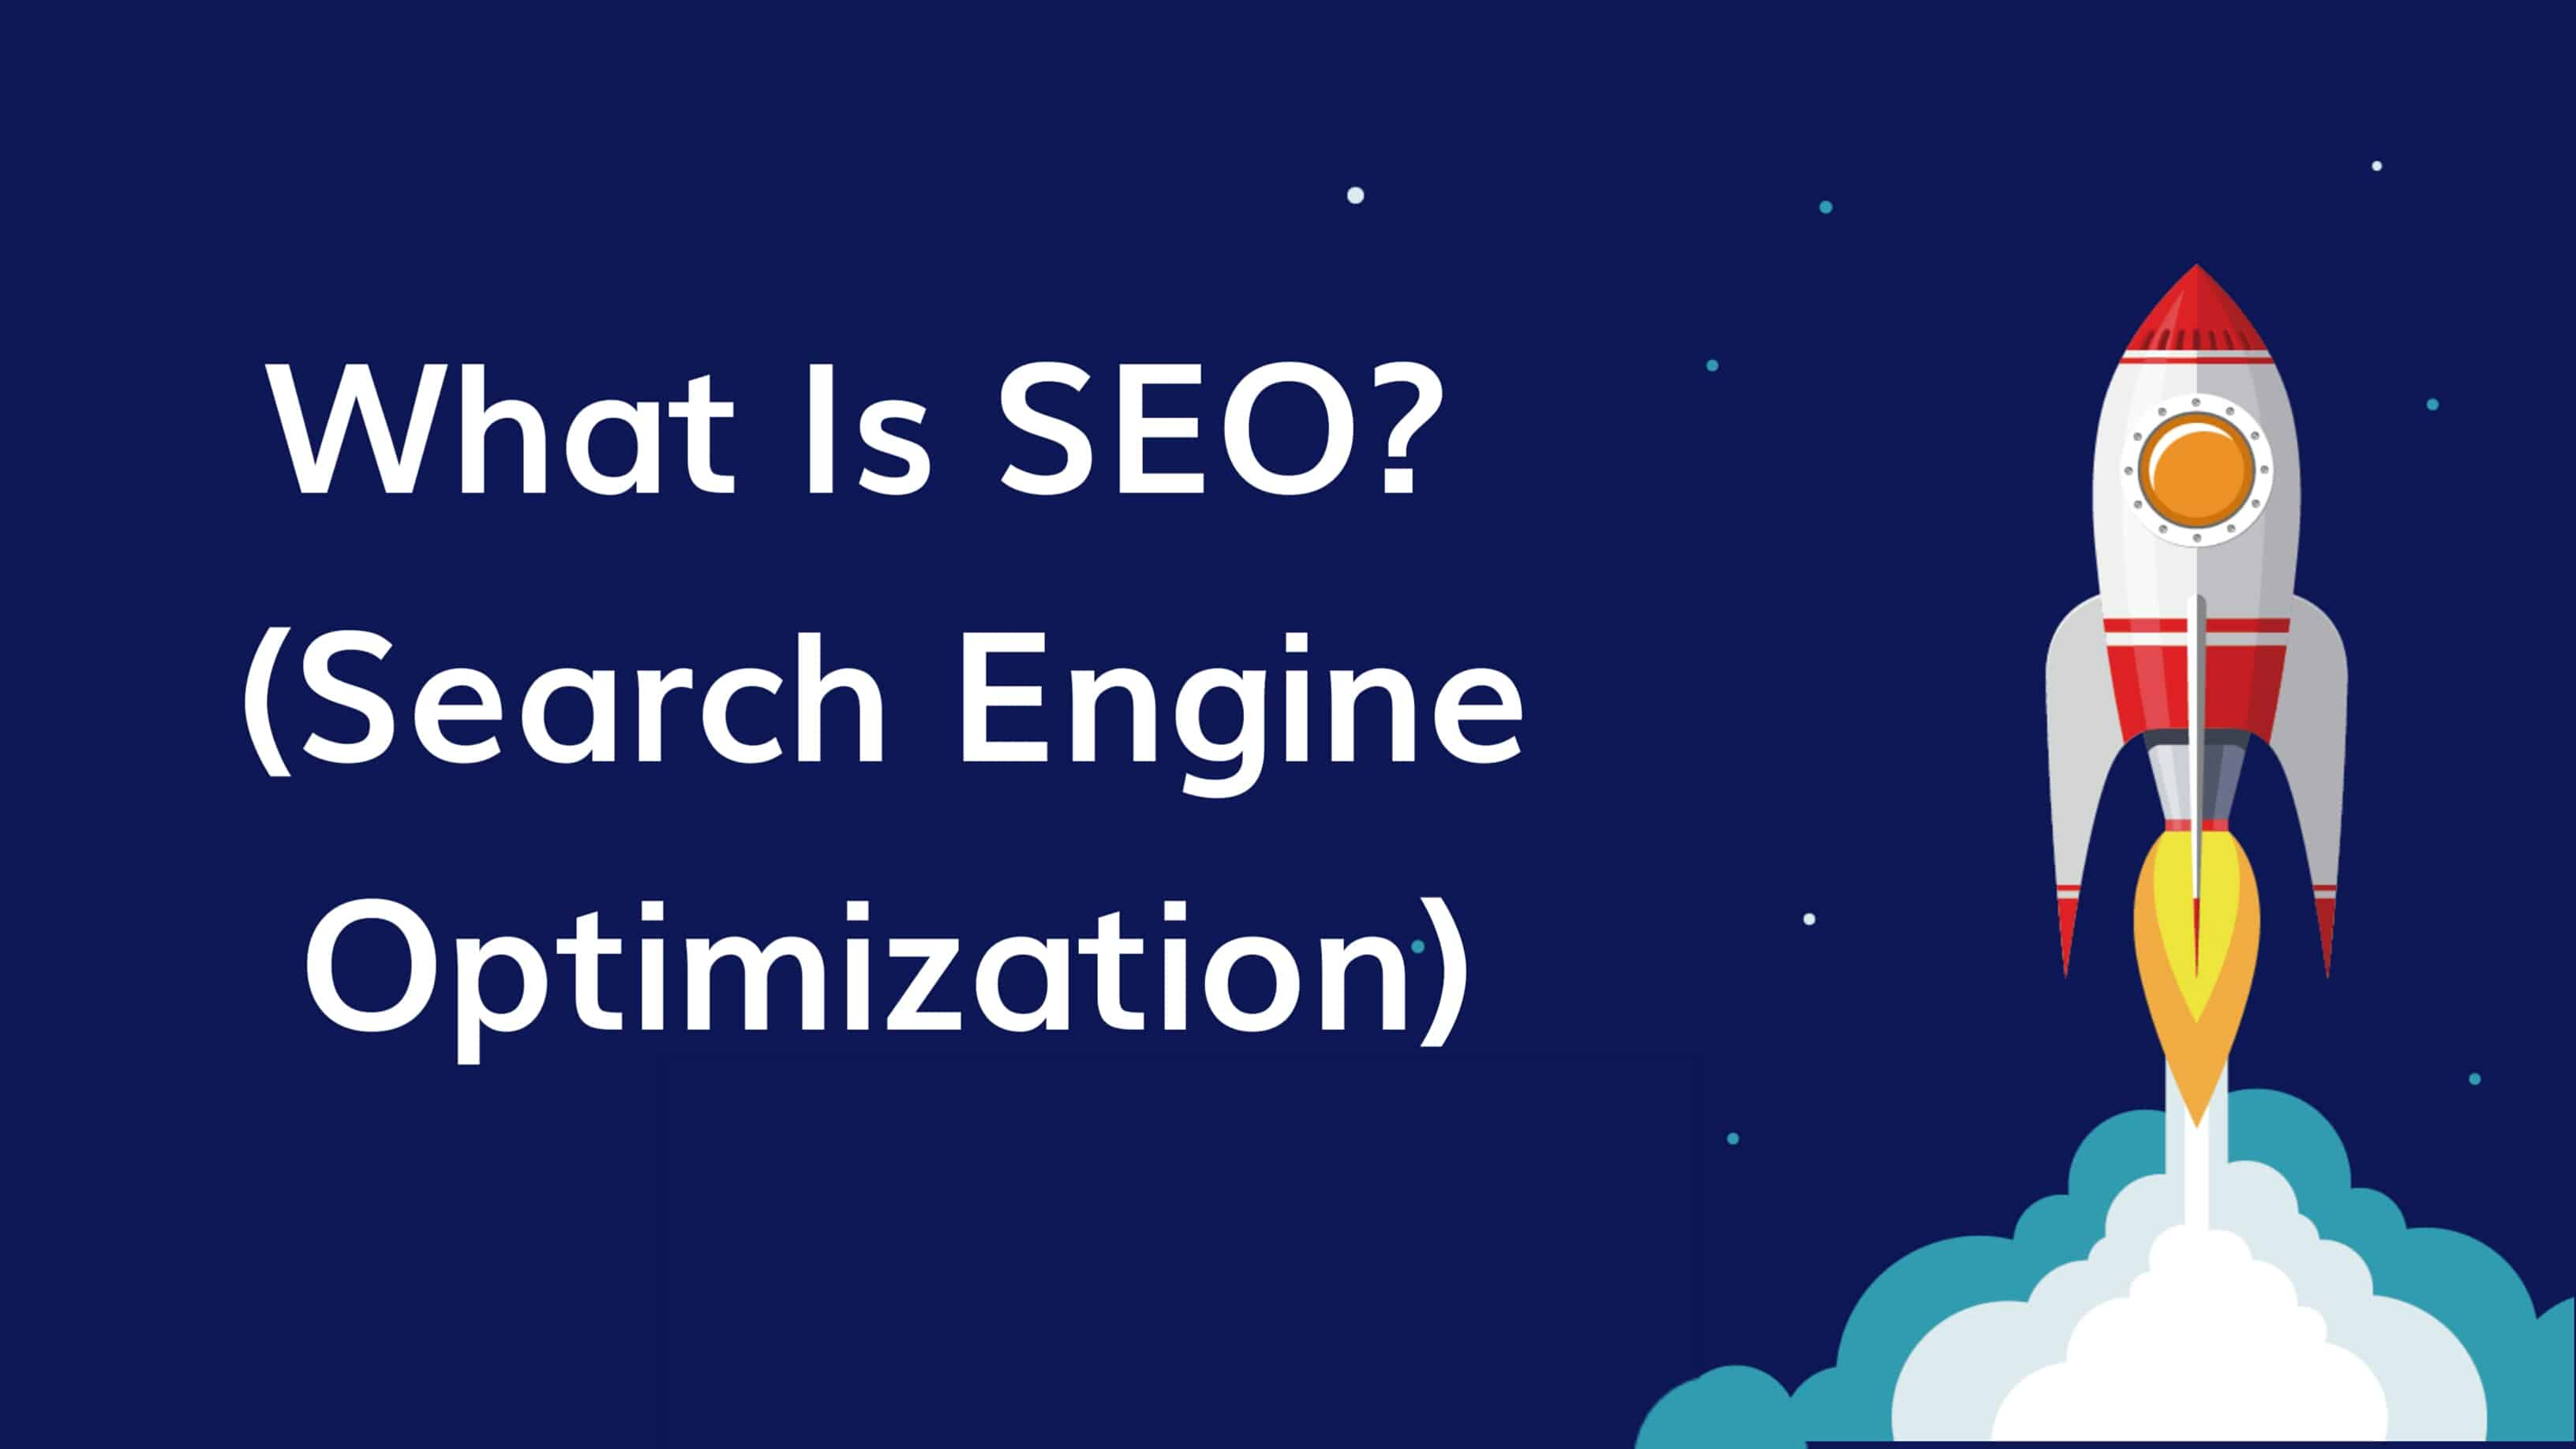 What is SEO (Search Engine Optimization) and How Does It Work